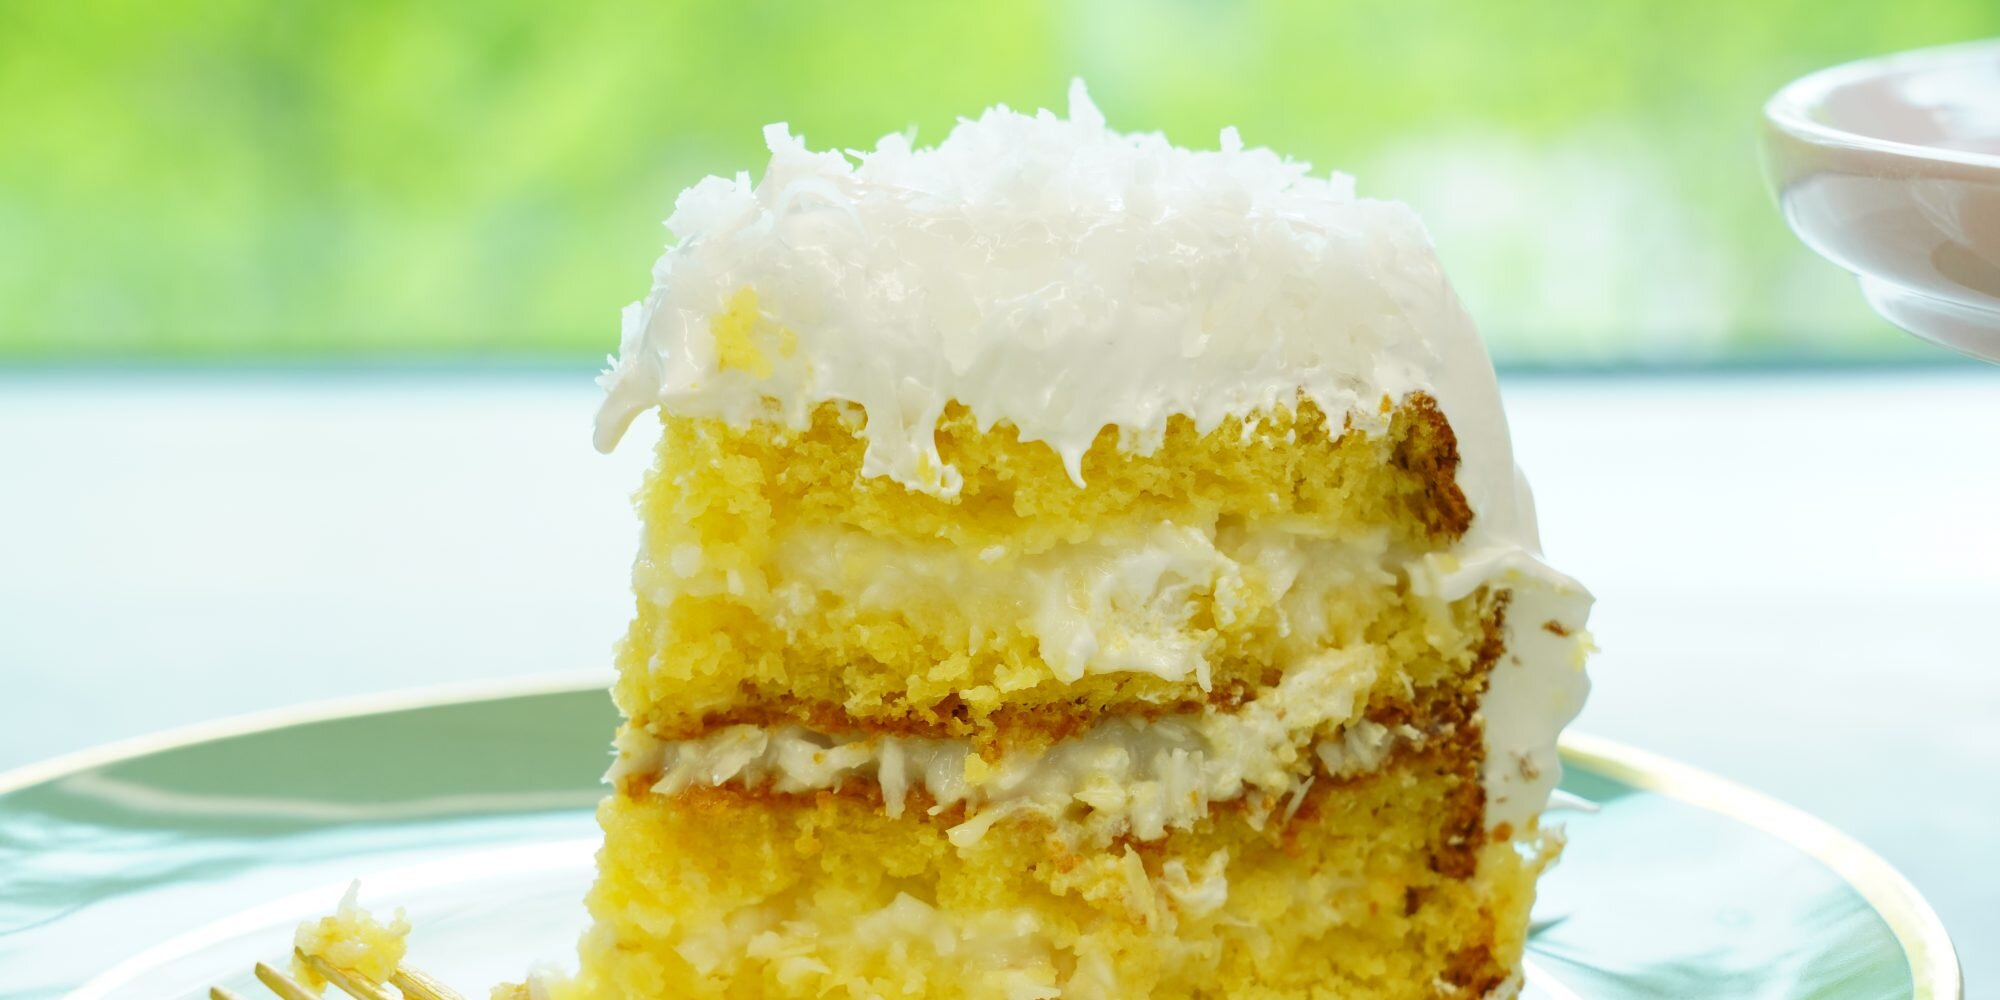 The Best Coconut Cake the Way Grandma Made It